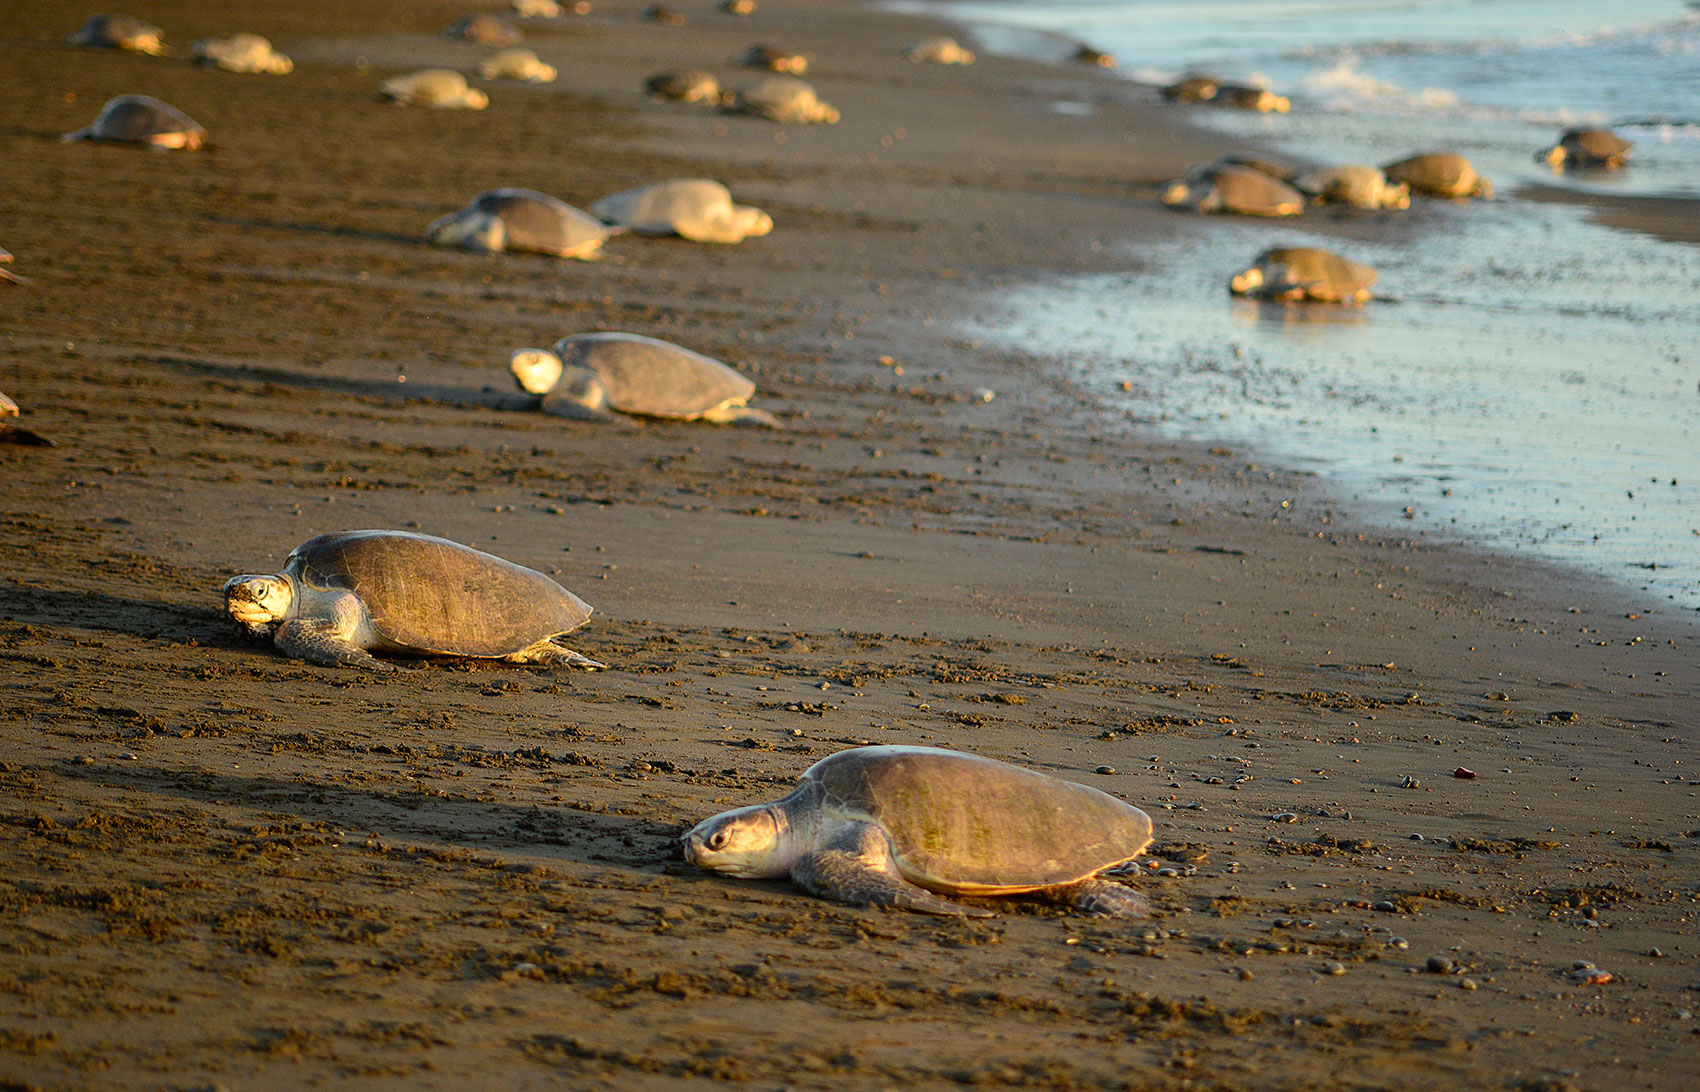 During an arribada thousands of sea turtles arrive together in a short span of time.